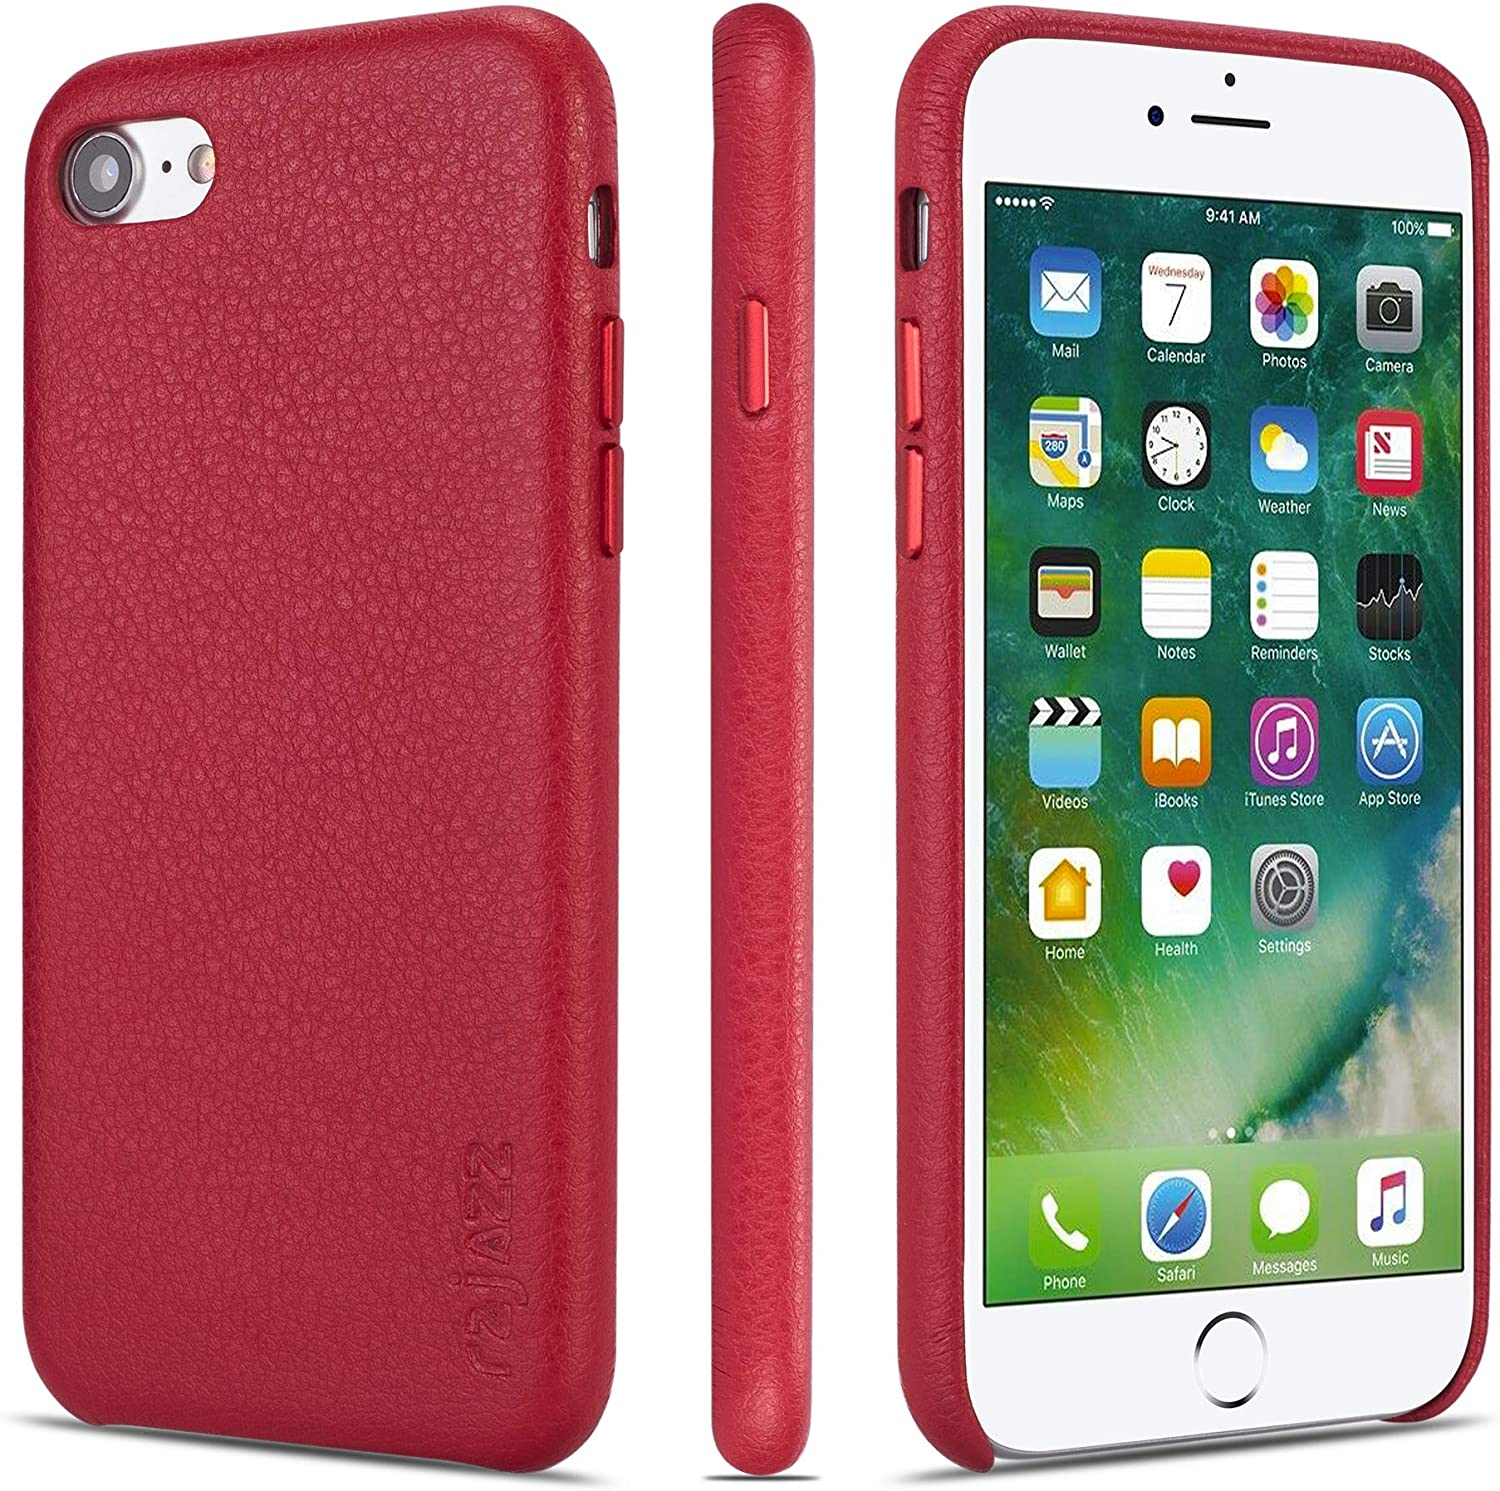 rejazz iPhone 7 Case iPhone 8 Case Anti-Scratch iPhone 7 Cover iPhone 8 Cover Genuine Leather Apple iPhone Cases for iPhone 7/8 (4.7 Inch)(Red)